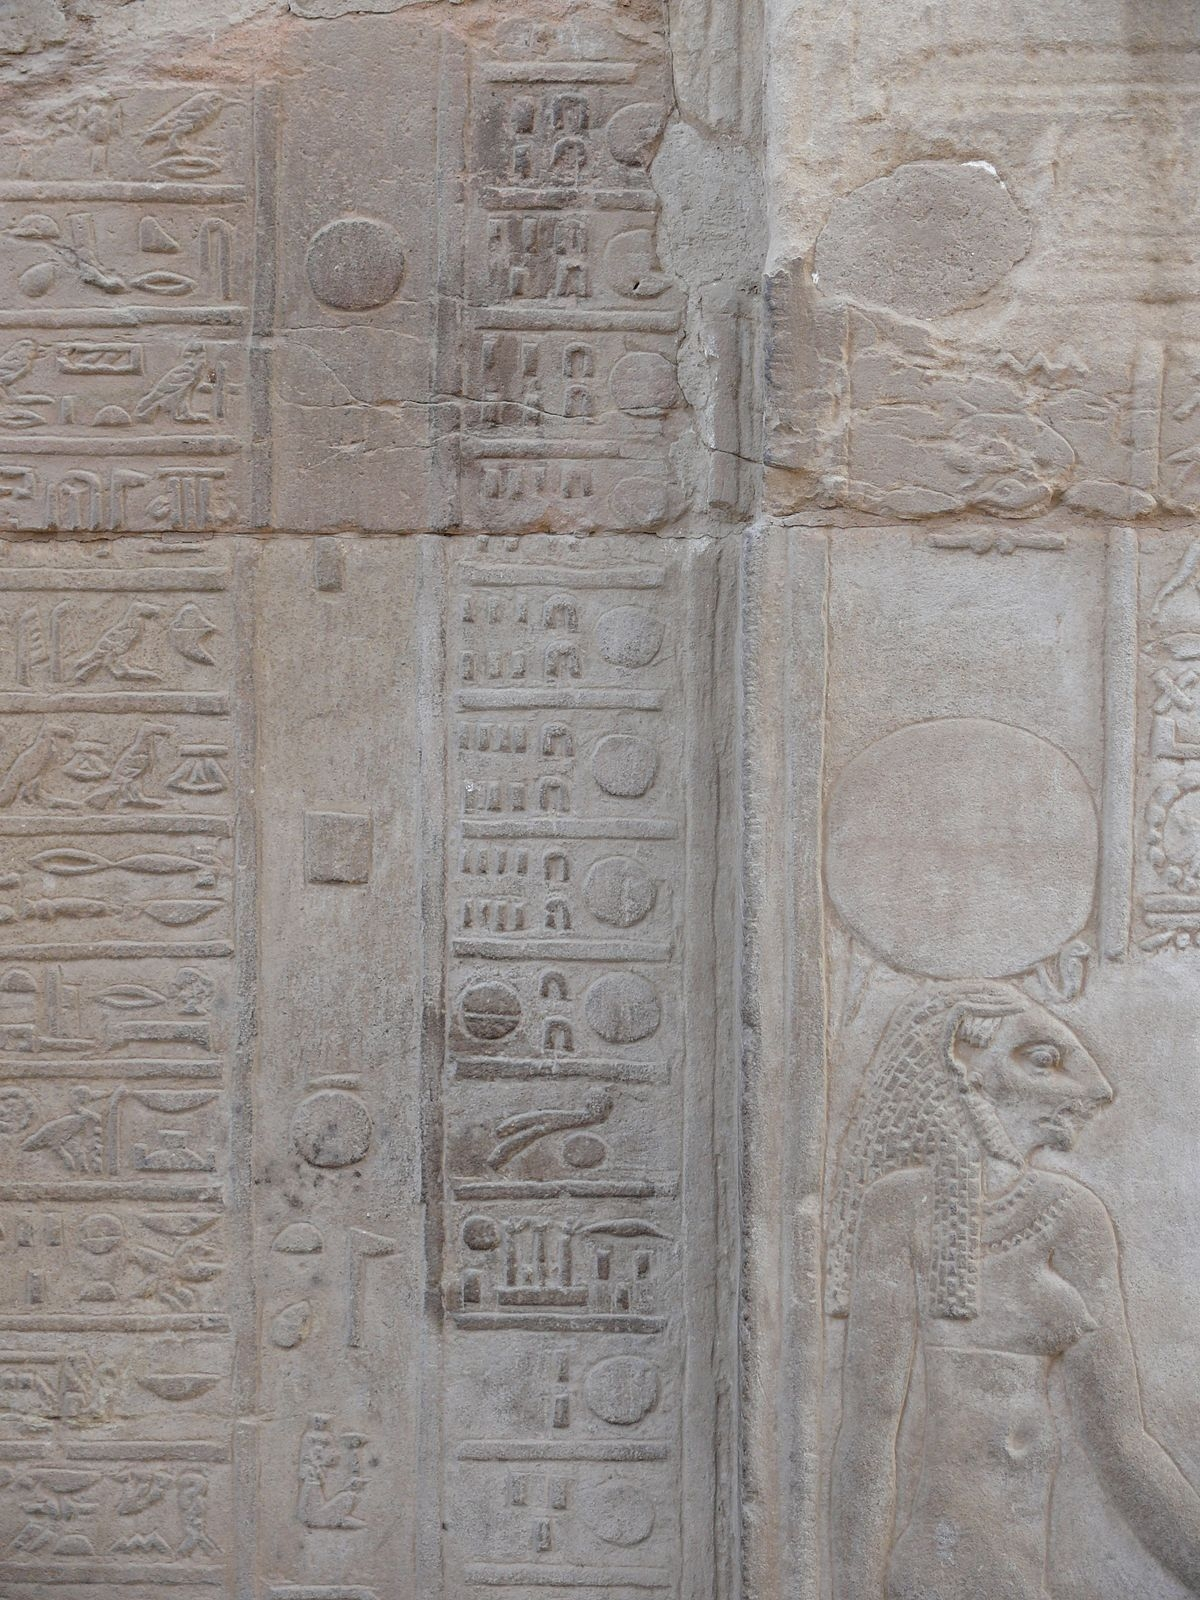 Egyptian Calendar - Wikipedia